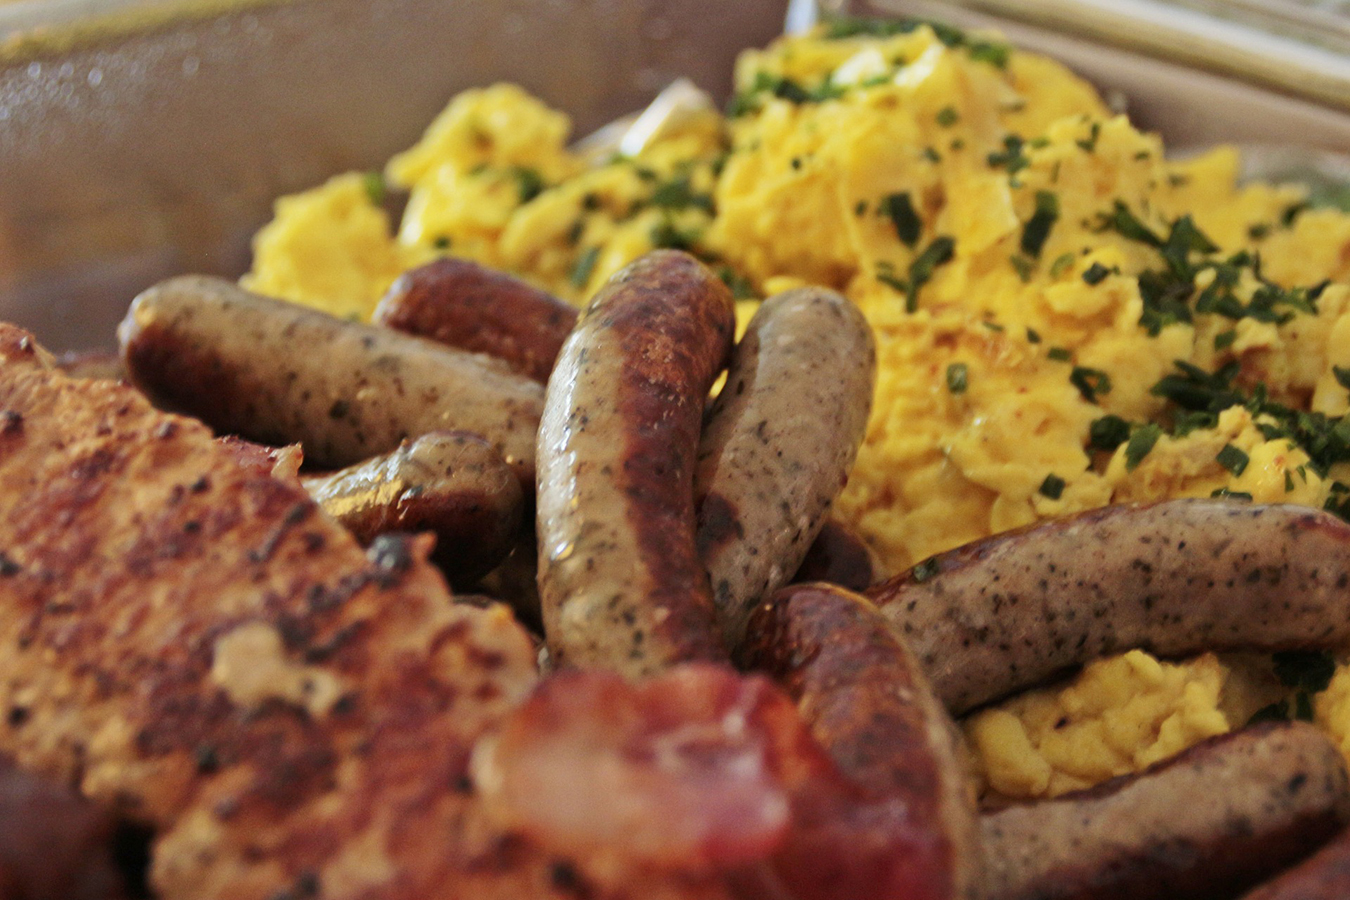 ezCater Corporate Catering - Eggs and Sausage Breakfast